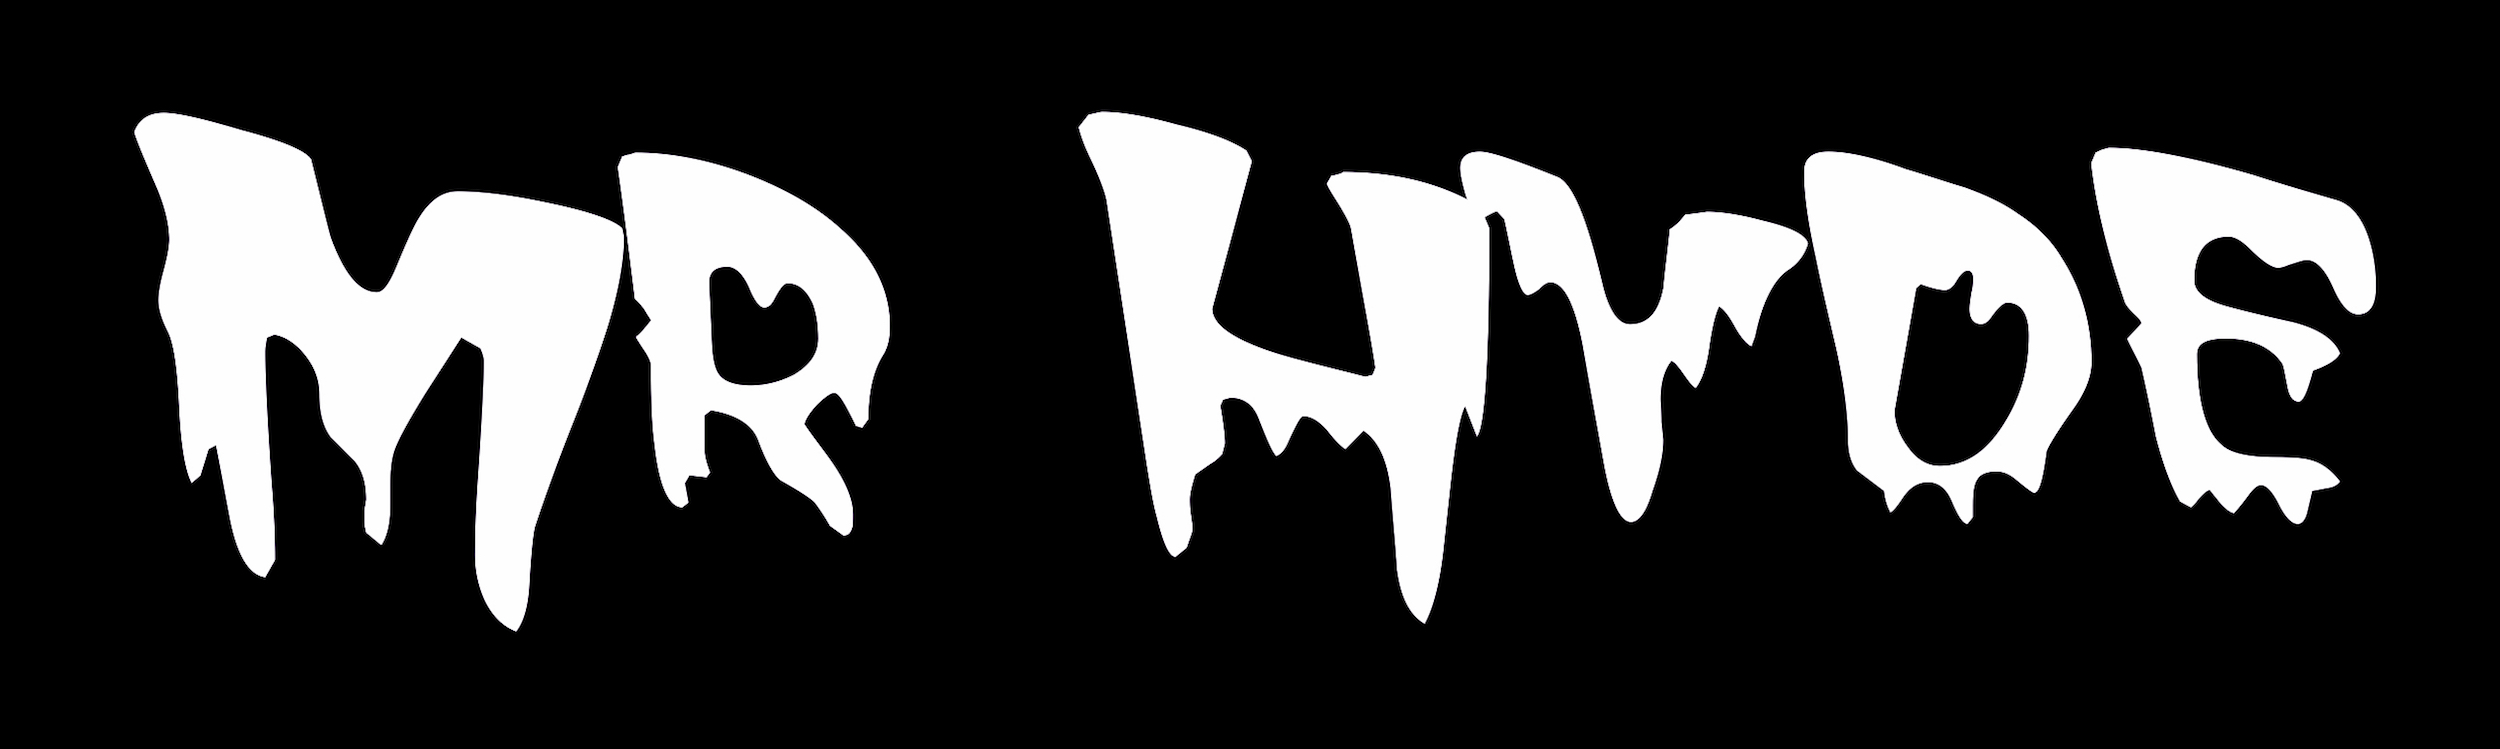 mrhyde logo black.jpg